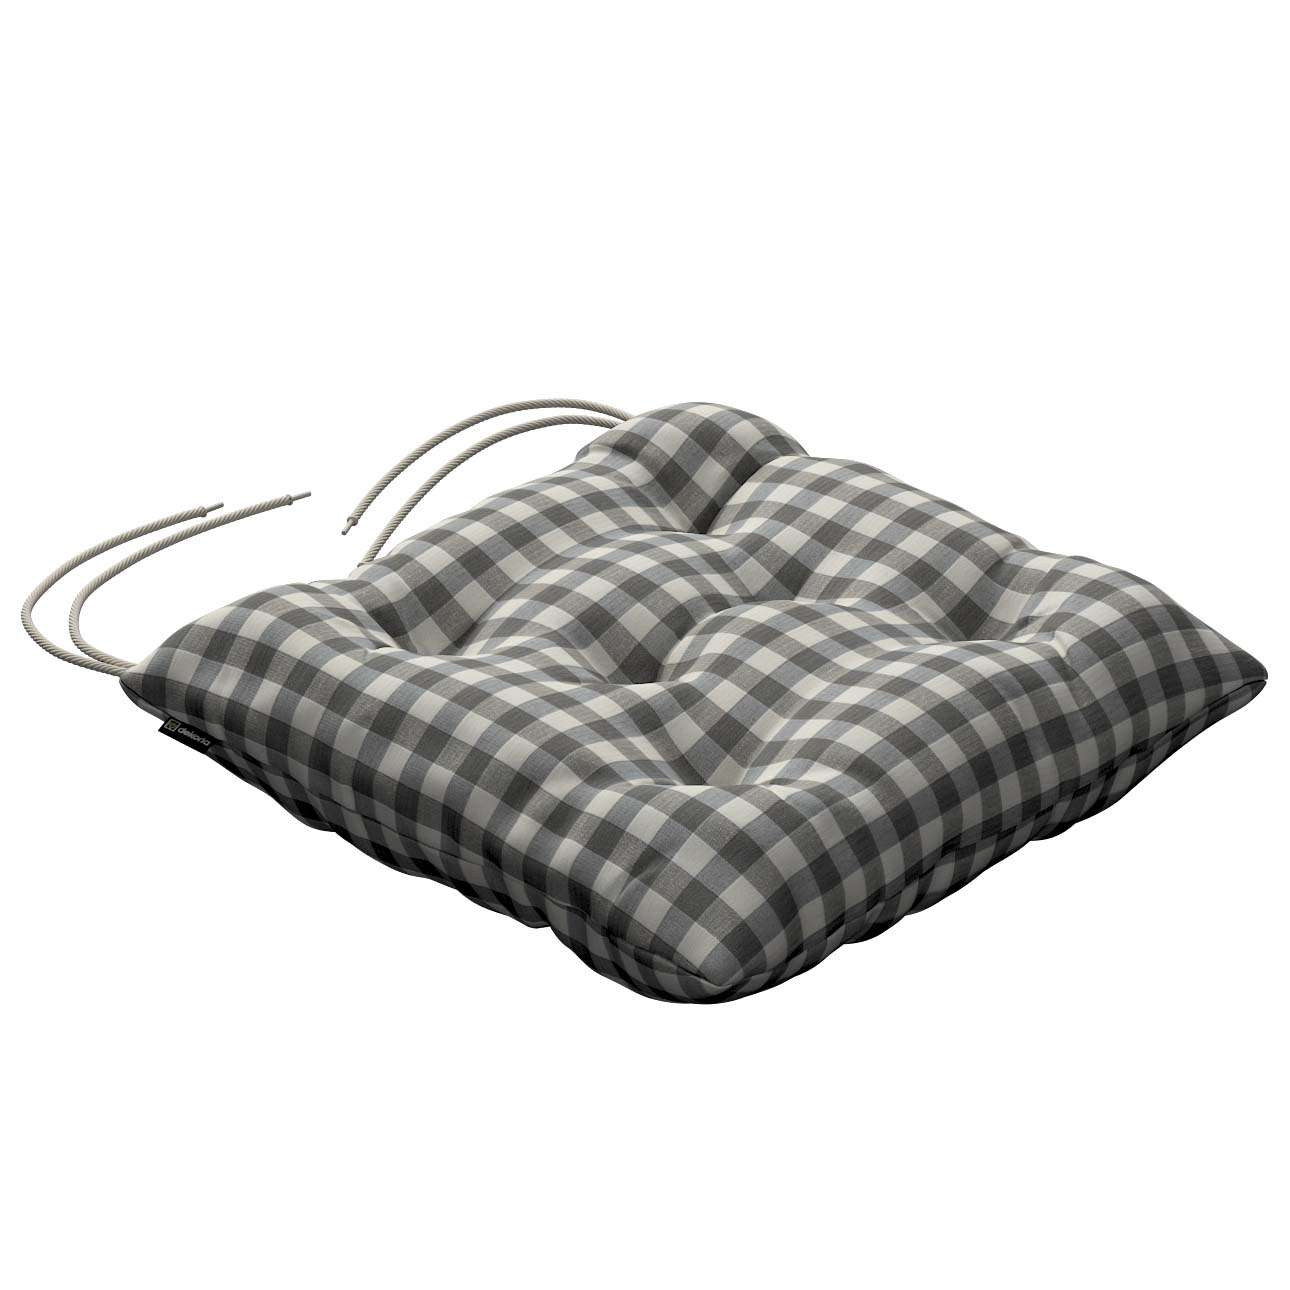 Jack seat pad with ties 40 × 40 × 8 cm (16 × 16 × 3 inch) in collection Quadro, fabric: 136-11